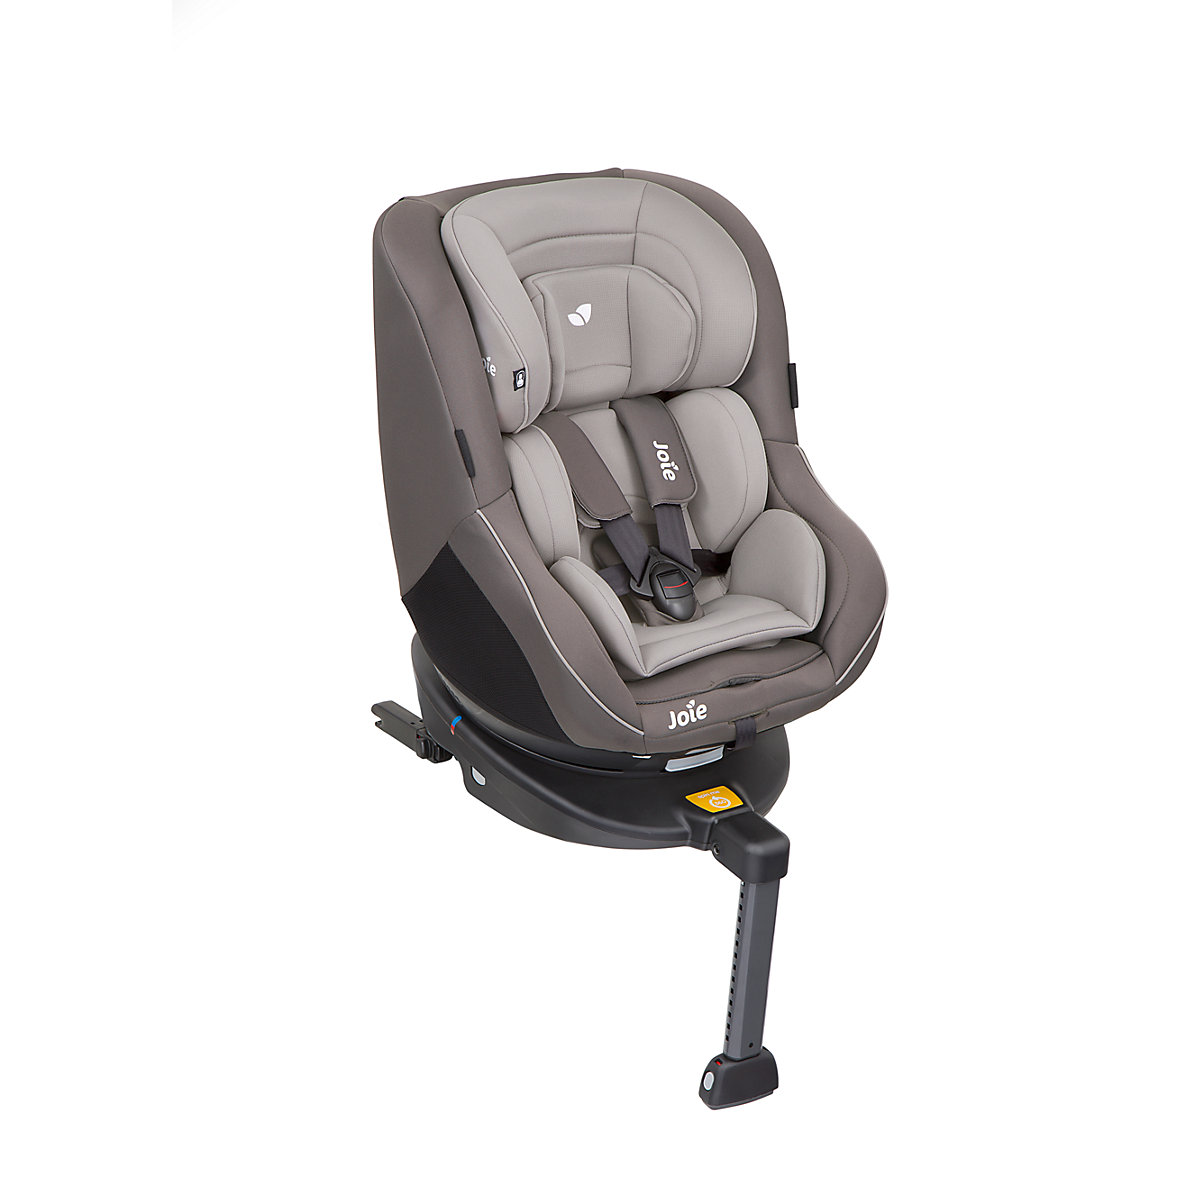 Joie Spin 360 Combination ISOFIX Car Seat